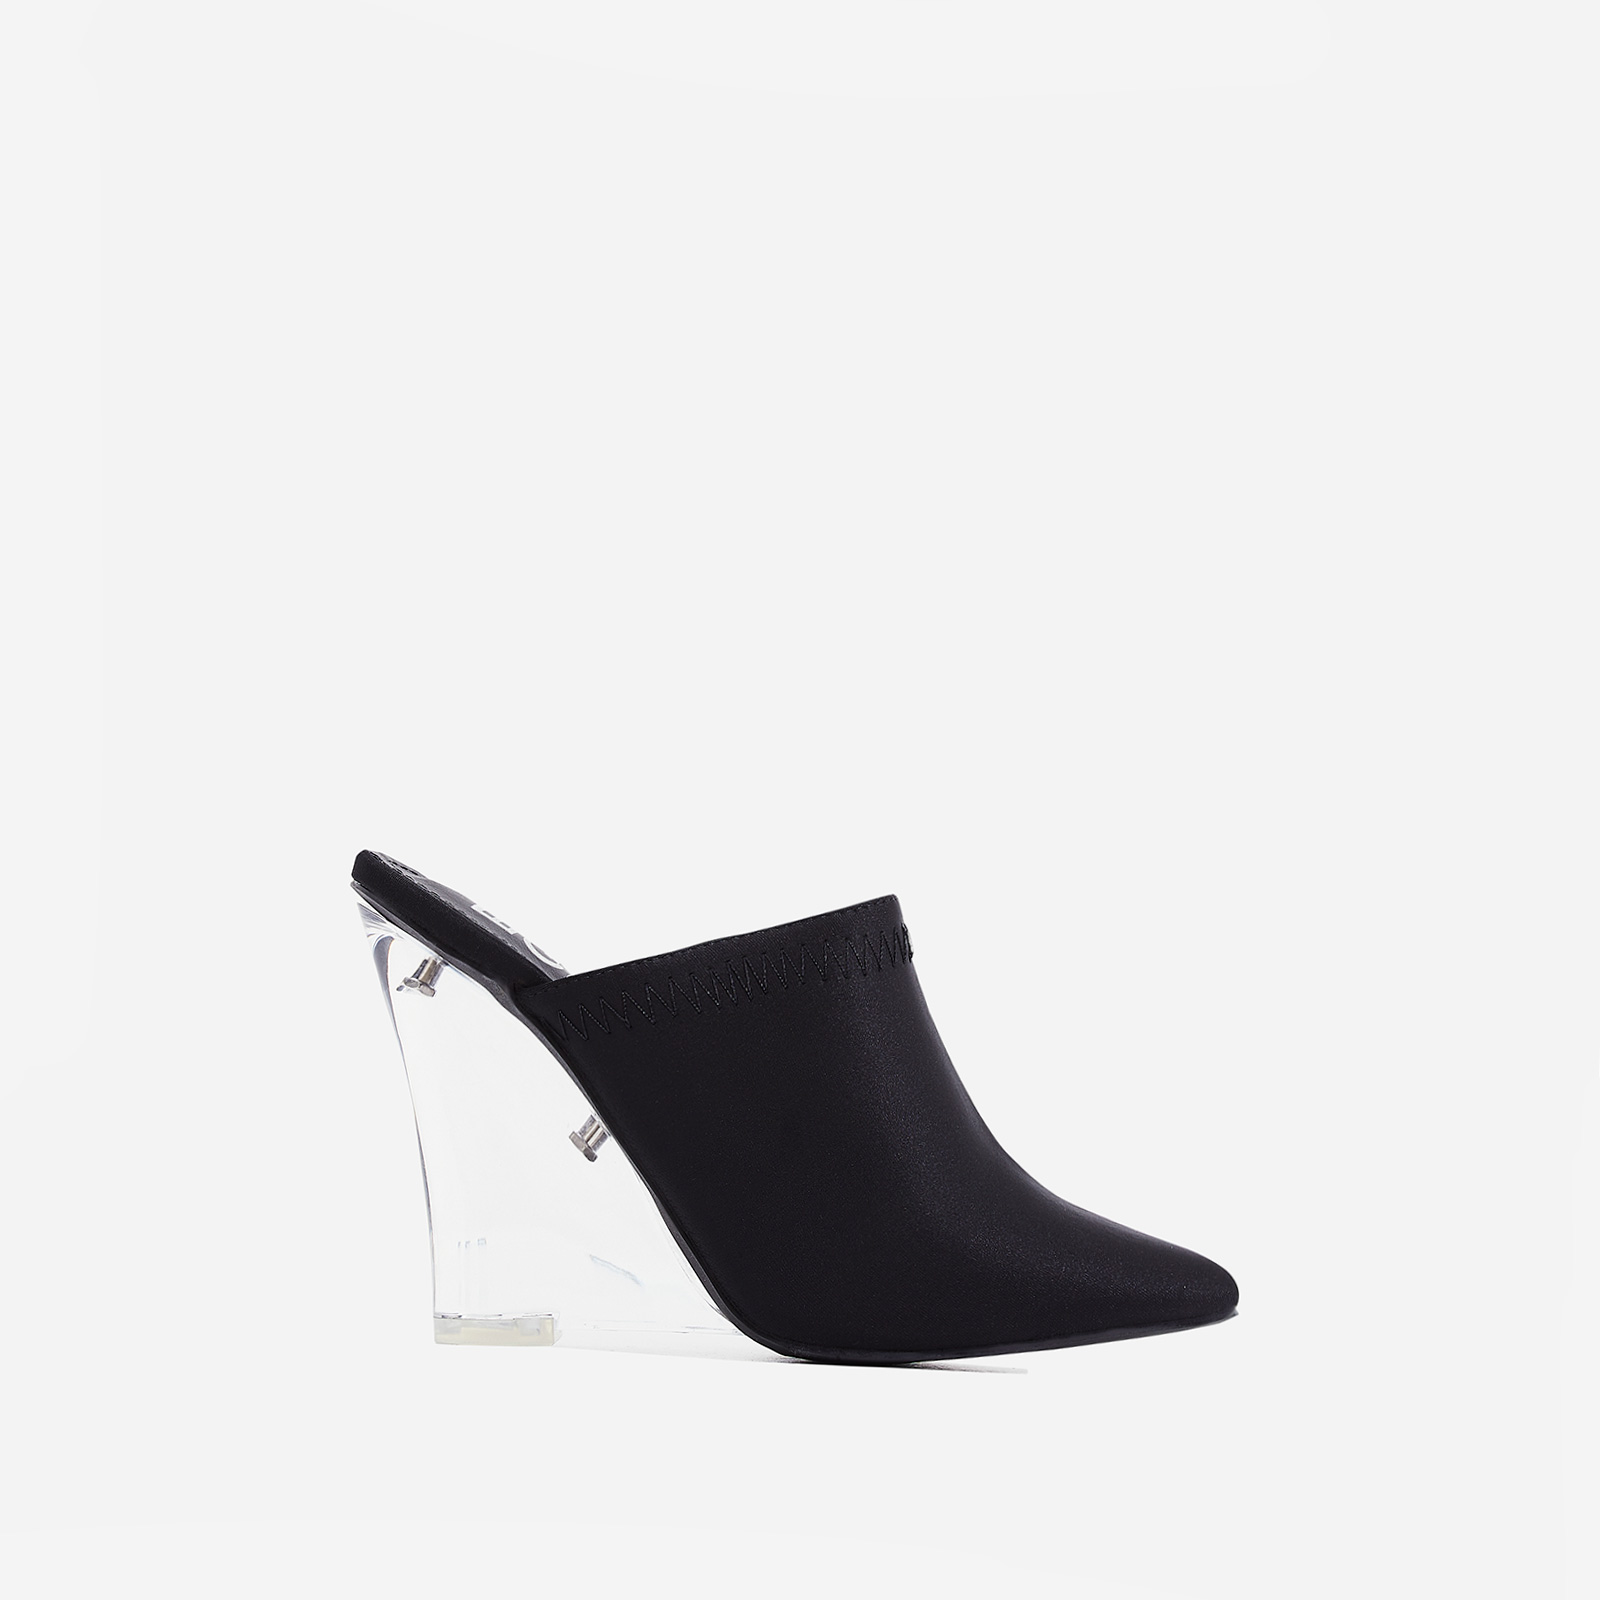 Dear Perspex Wedge Heel Mule In Black Lycra